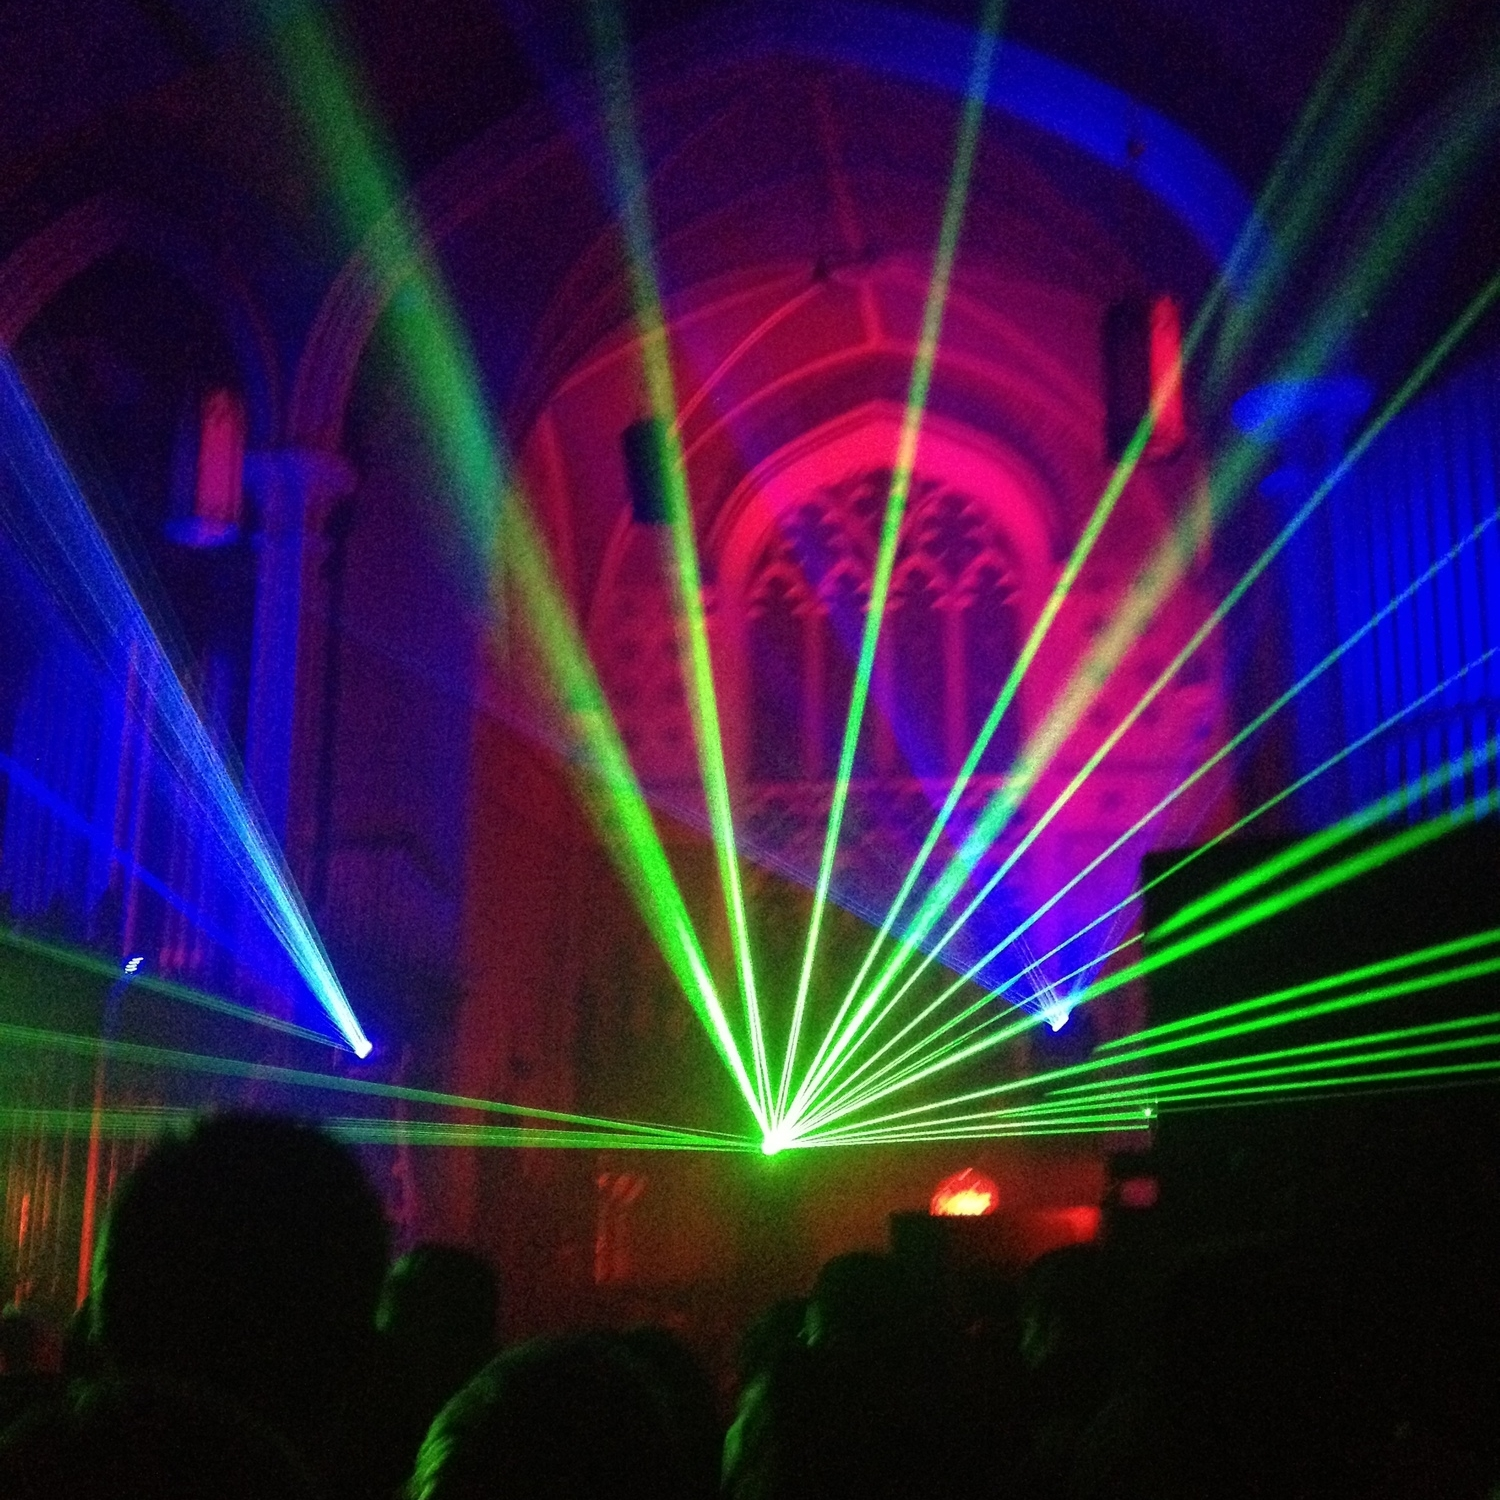 A photo I took in high school at a Zeds Dead (dubstep) show which took place in a church.